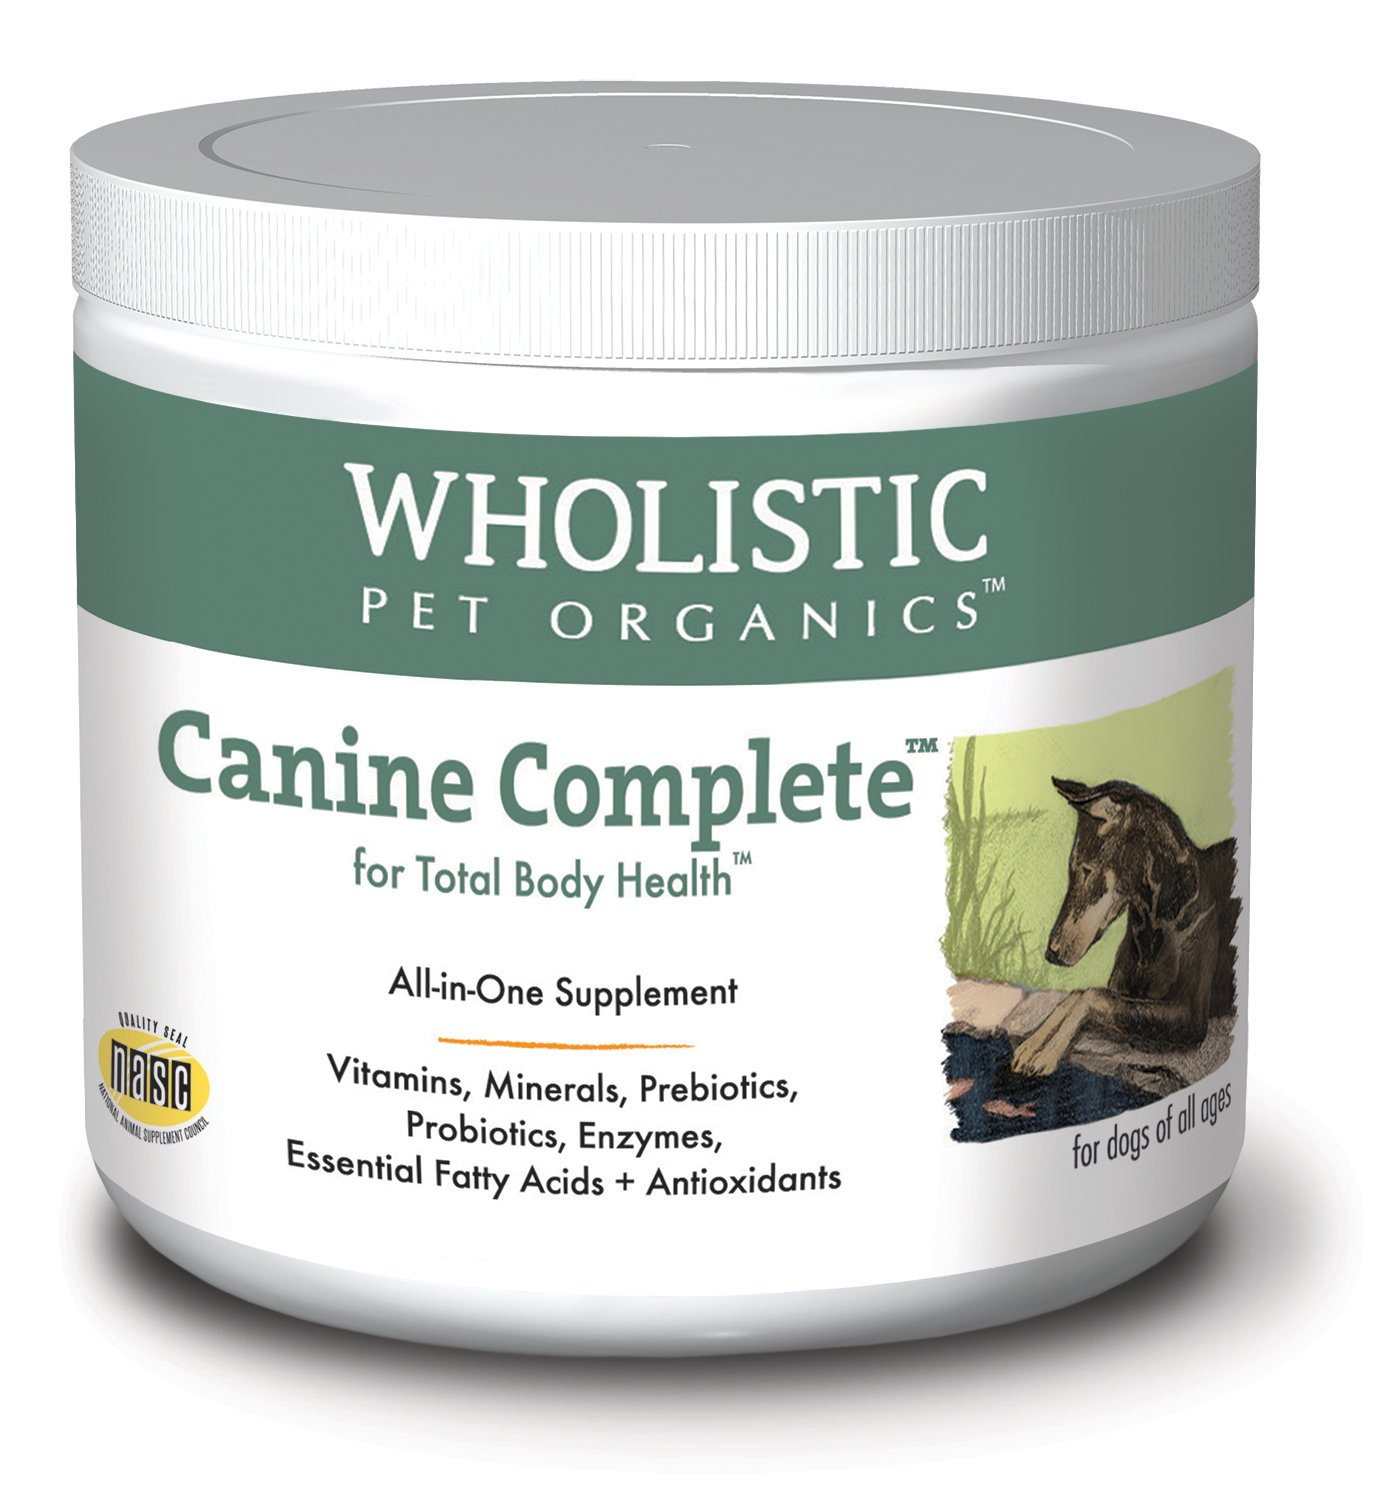 Wholistic Canine Complete 18 lbs. by Wholistic Pet Organics